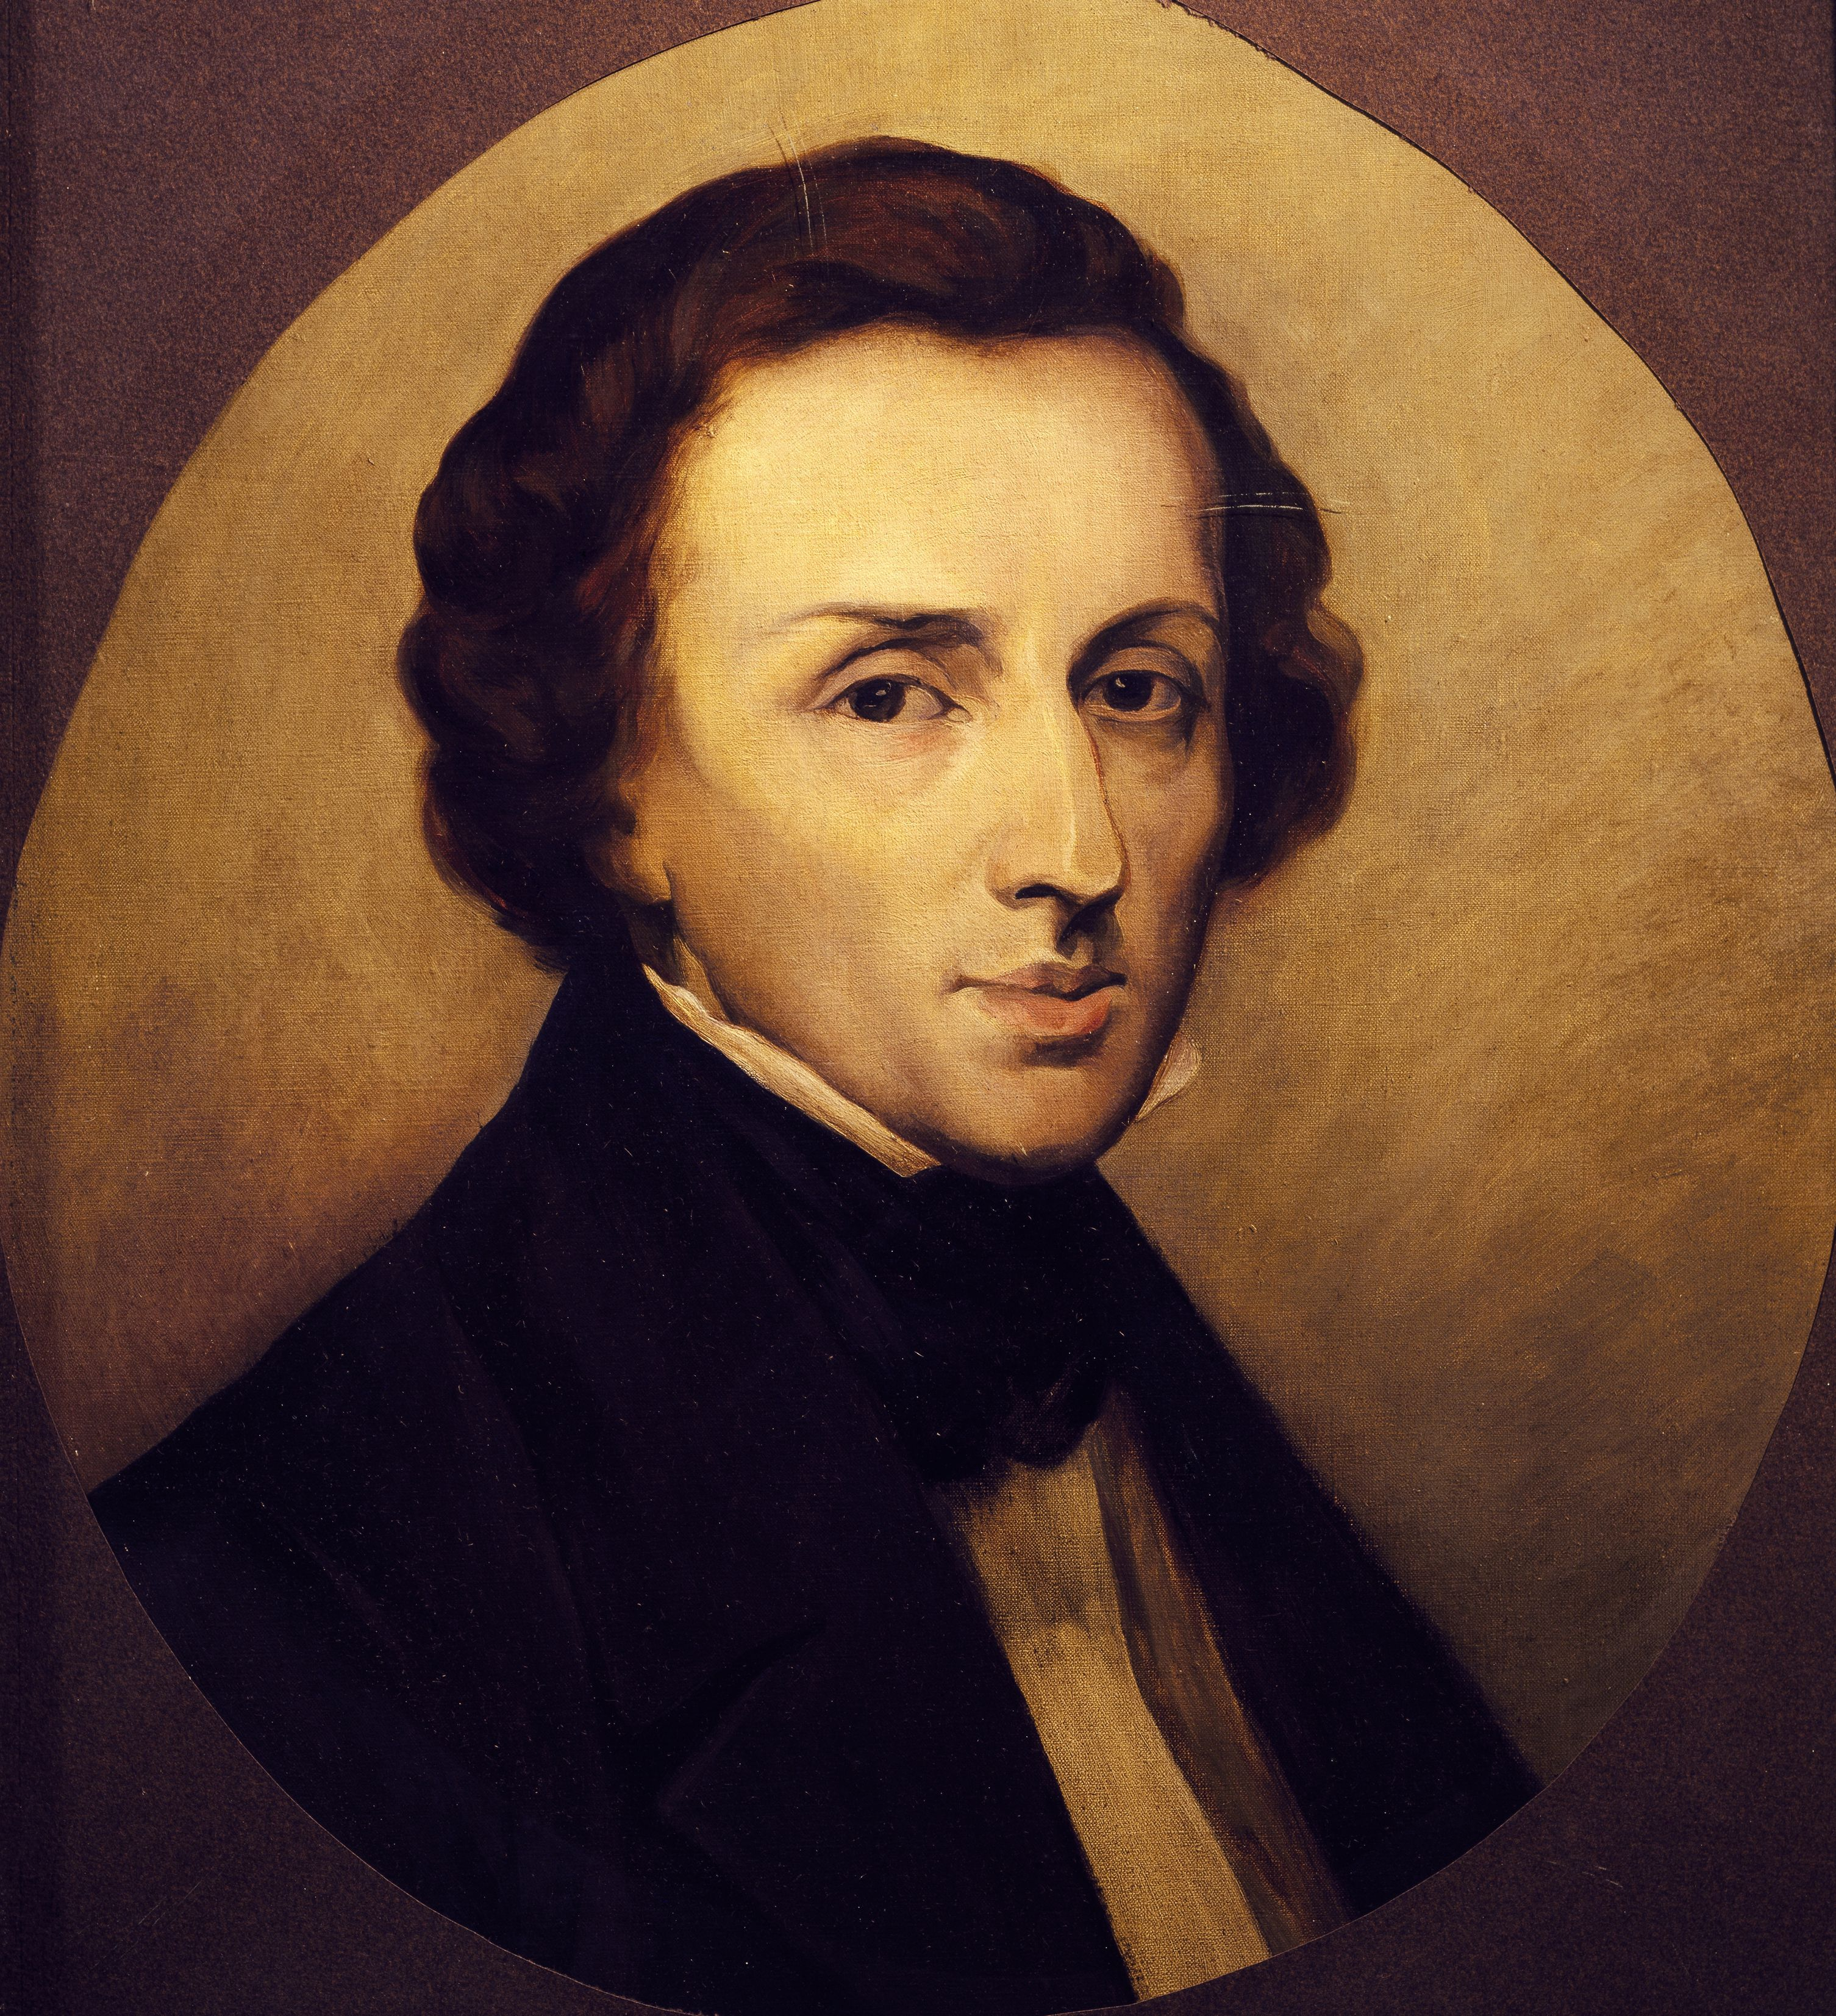 an introduction to the life of frederic chopin one of the greatest composers of piano music